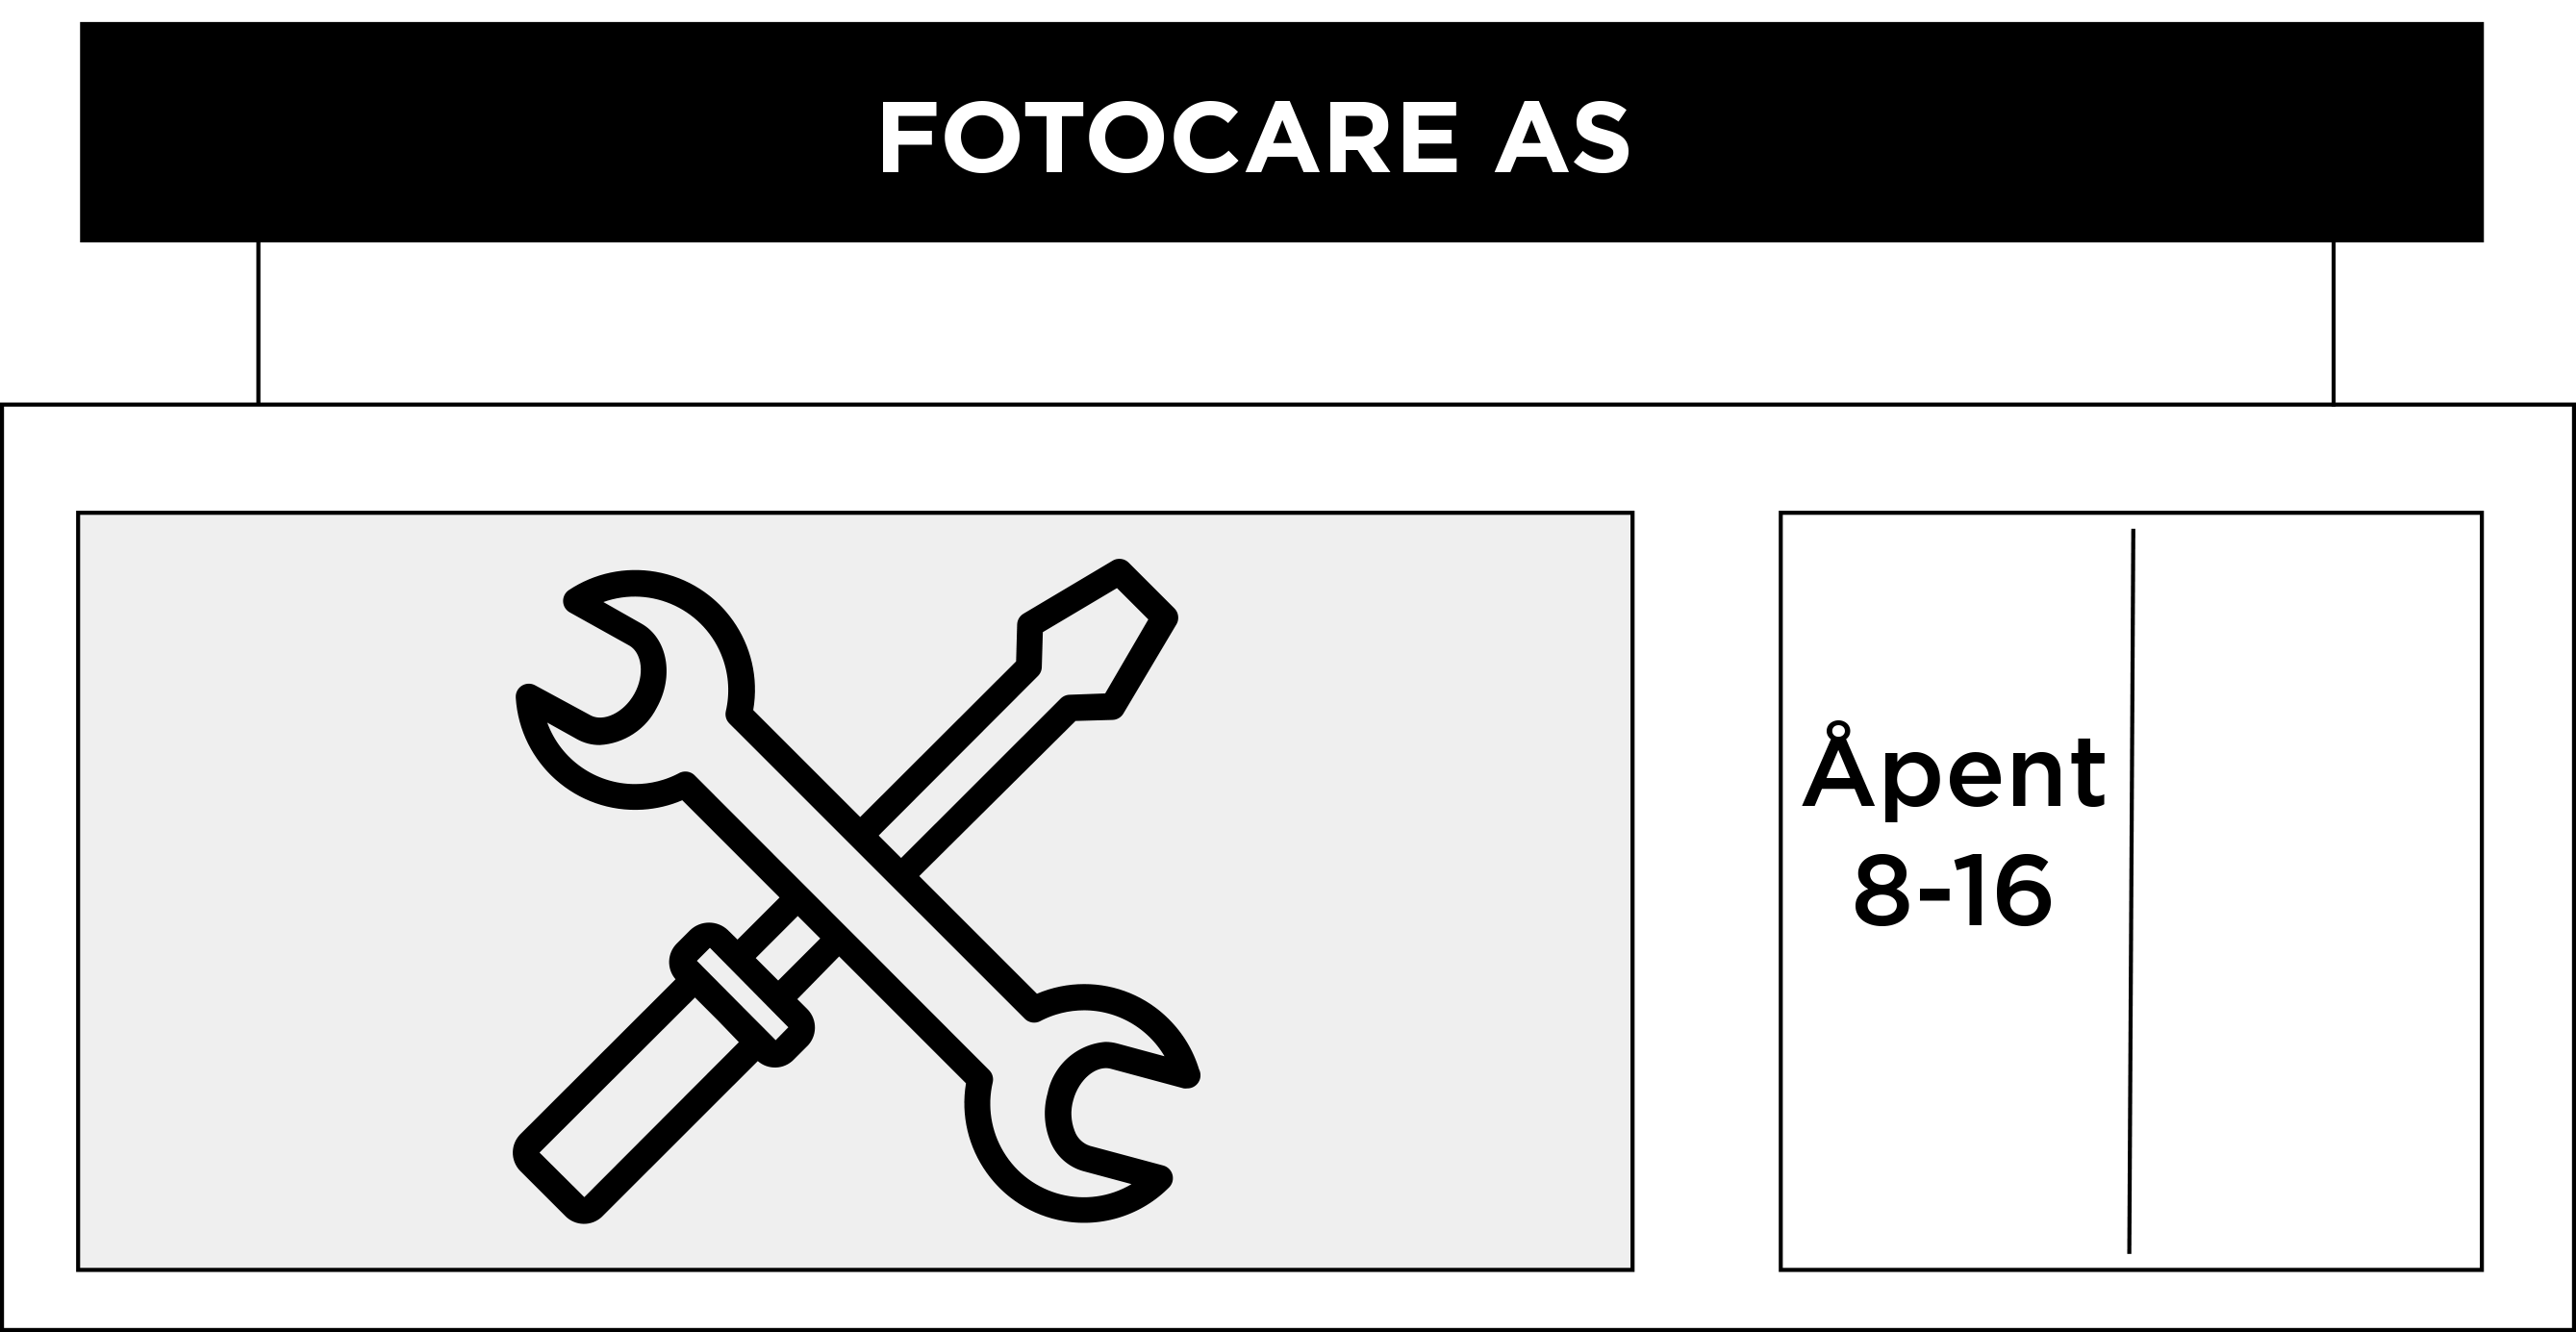 FotoCare AS